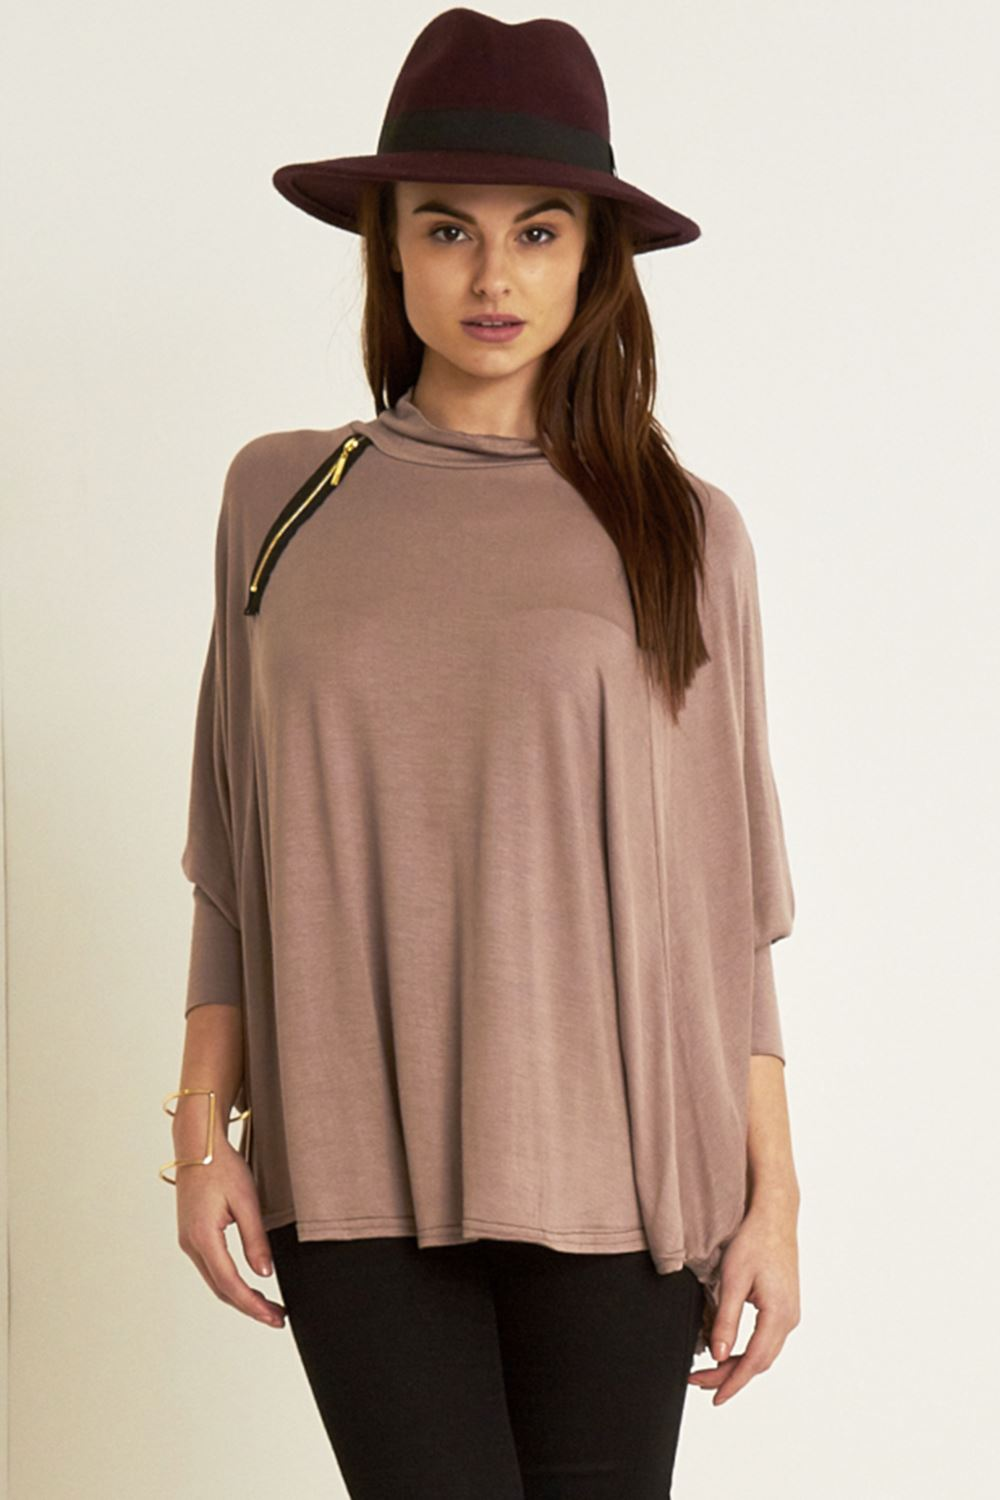 Find fashion tops, relaxed tees & dressy blouses in the latest boutique dirtyinstalzonevx6.gal, Home & More· New Events Every Day· Hurry, Limited Inventory· New Deals Every Day57,+ followers on Twitter.